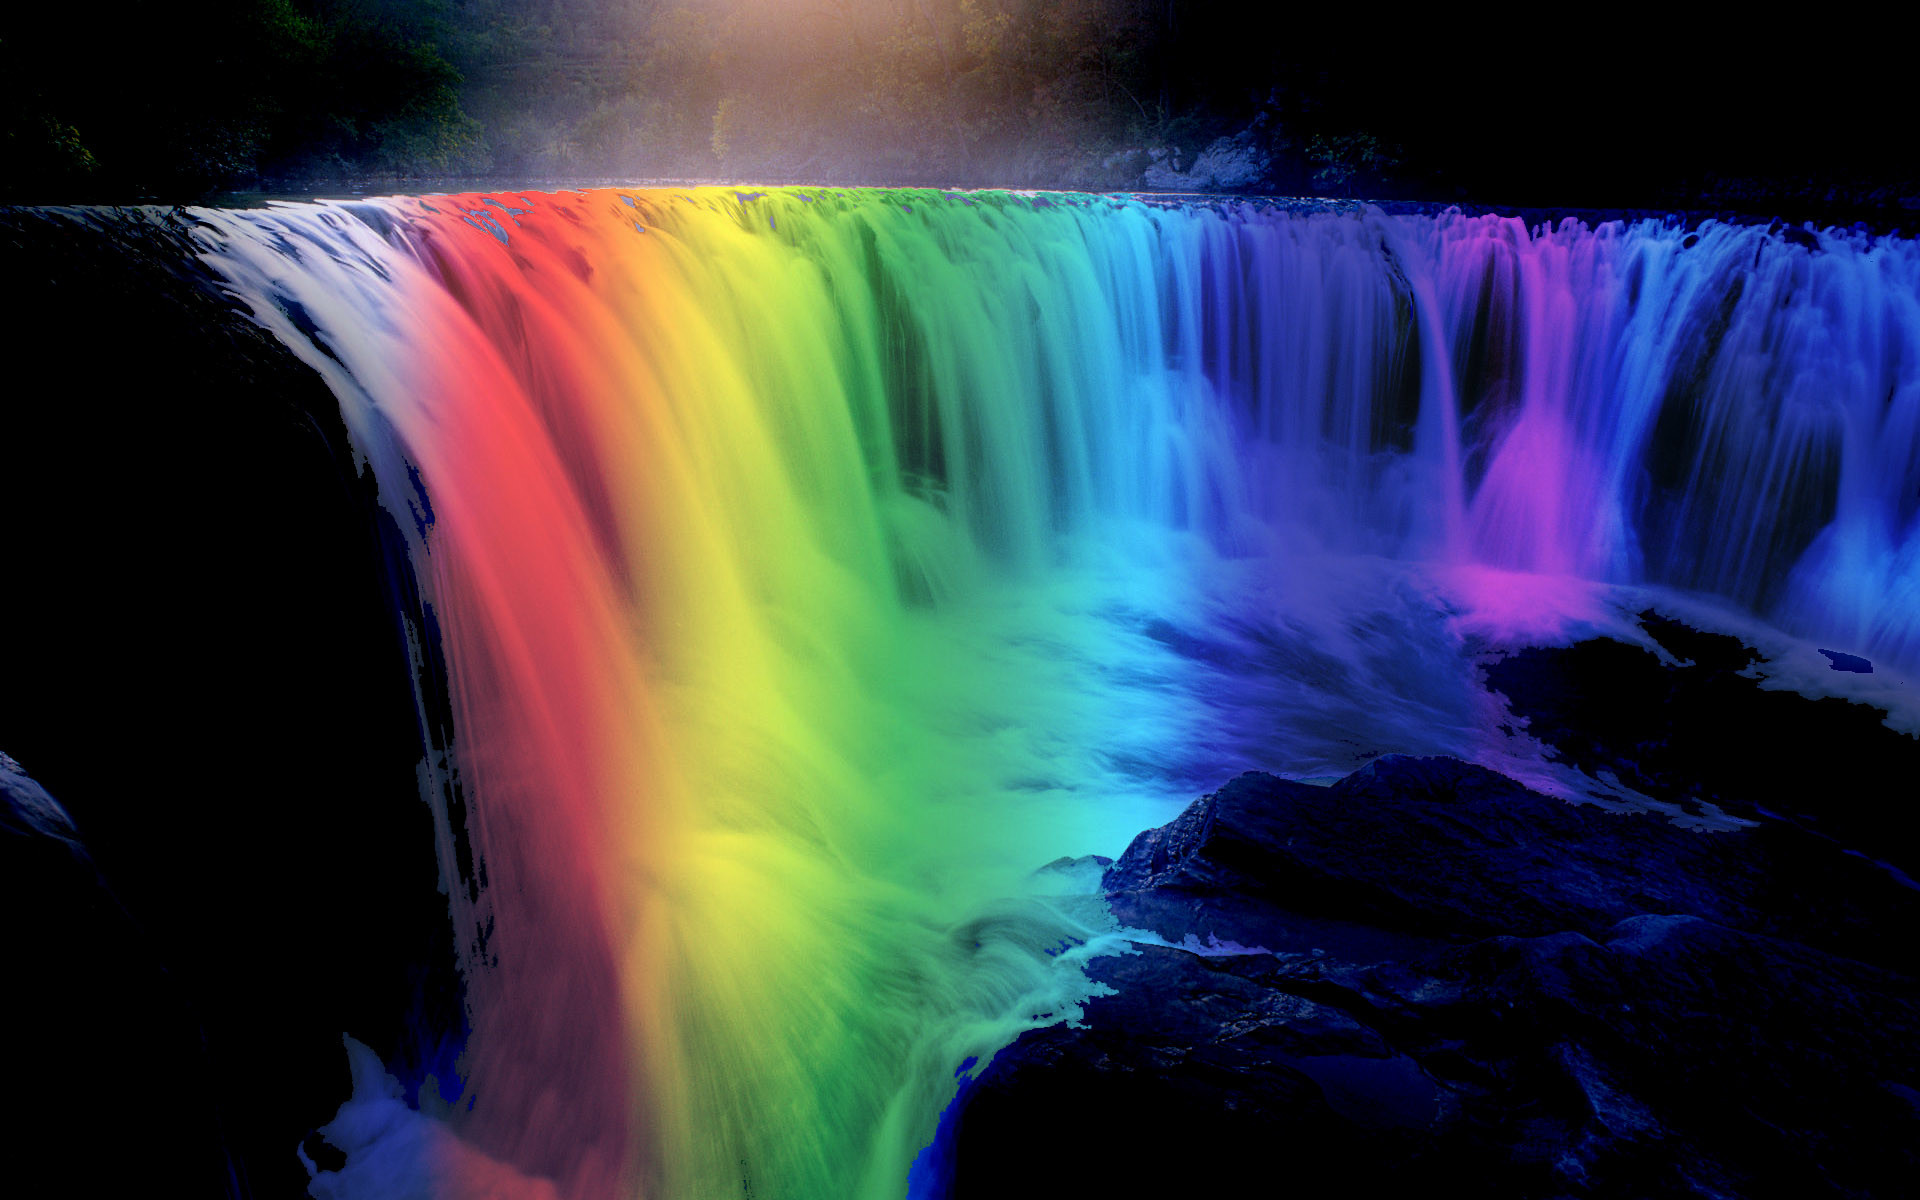 Res: 1920x1200, Waterfall And Rainbow Image